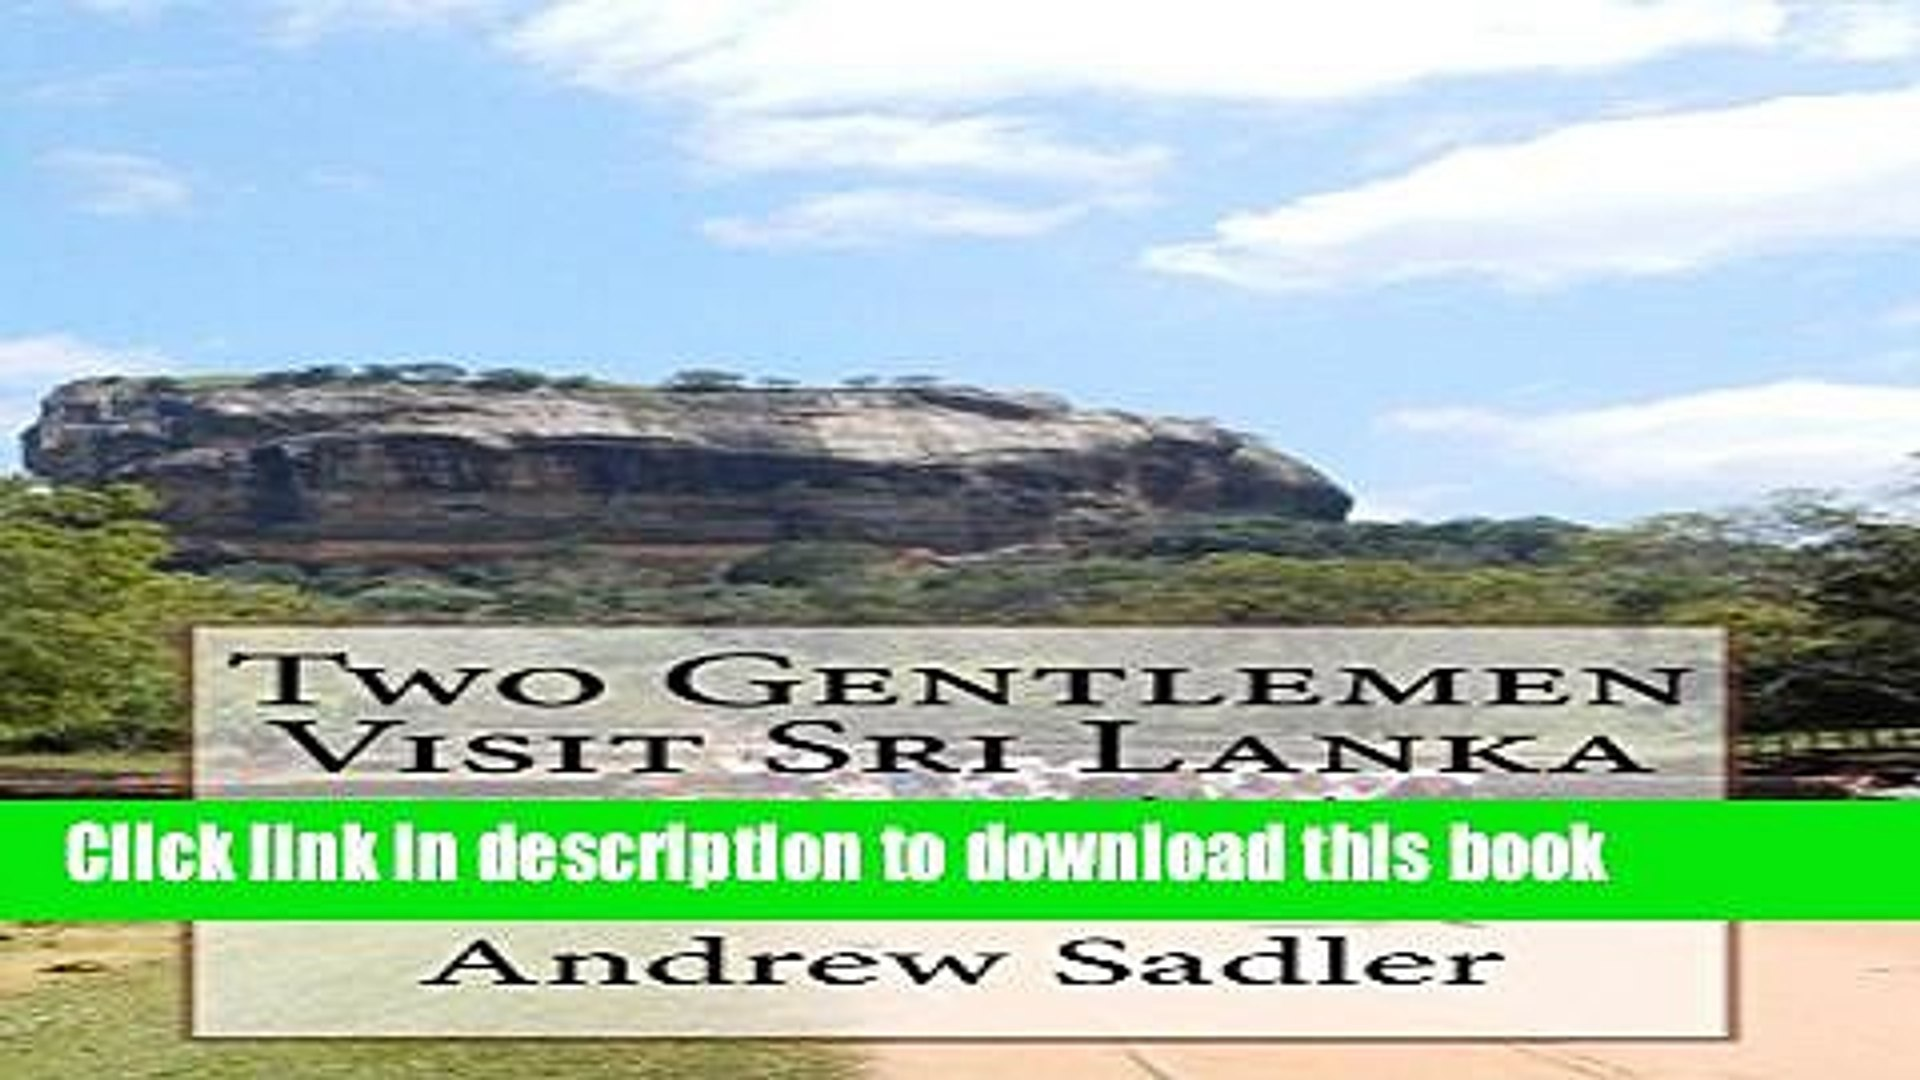 [Download] Two Gentlemen Visit Sri Lanka: A Visit to Colombo and Travel with a Kind Companion Full